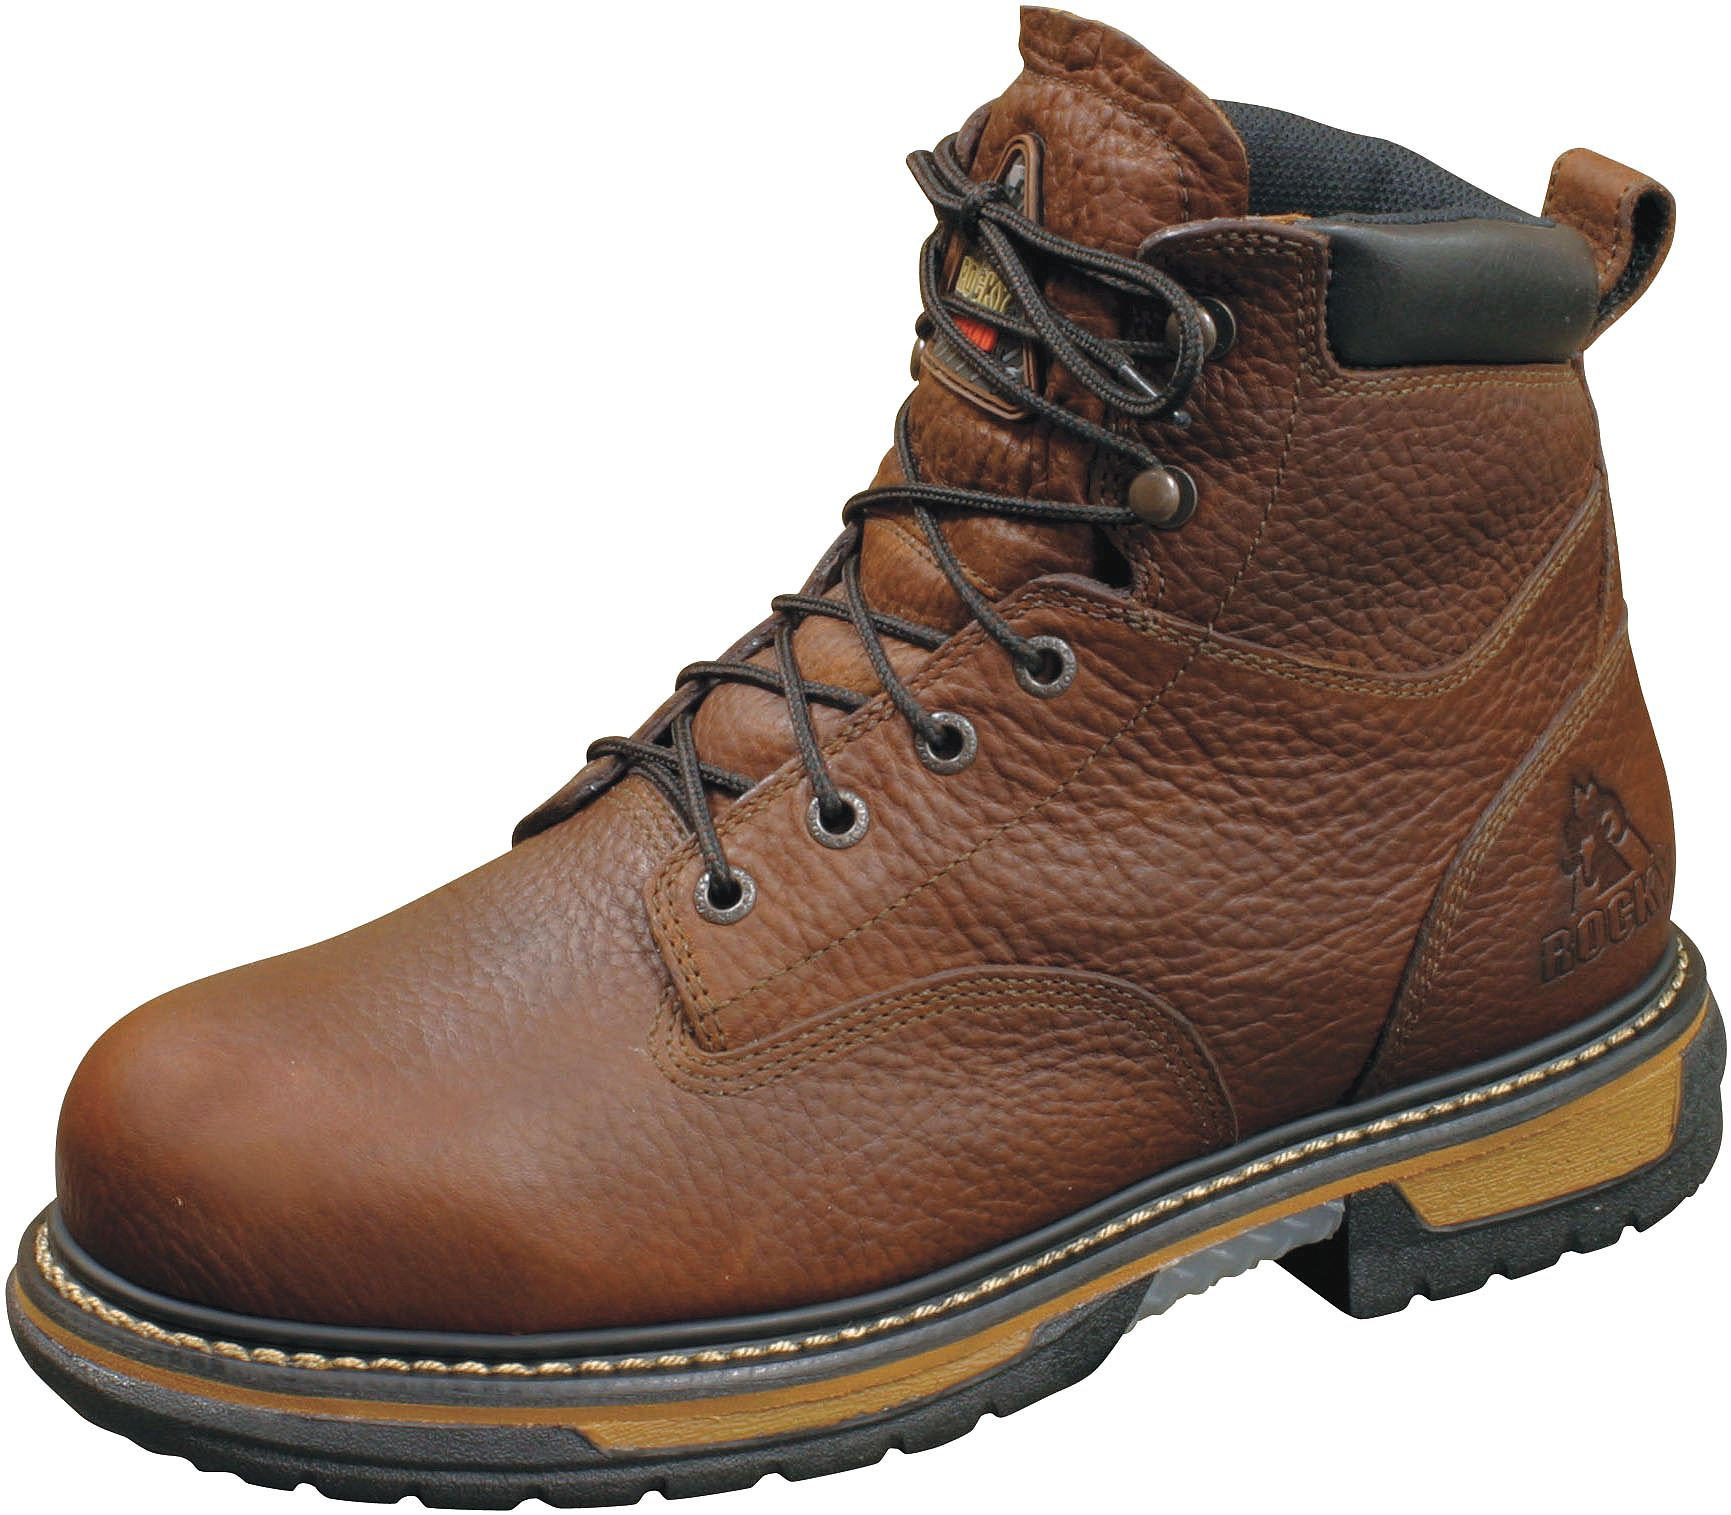 Rocky Shoes & Boots - 5696-11.5W - Work Boots, Pln, Men, 11-1/2W, Brown, 1PR at Sears.com